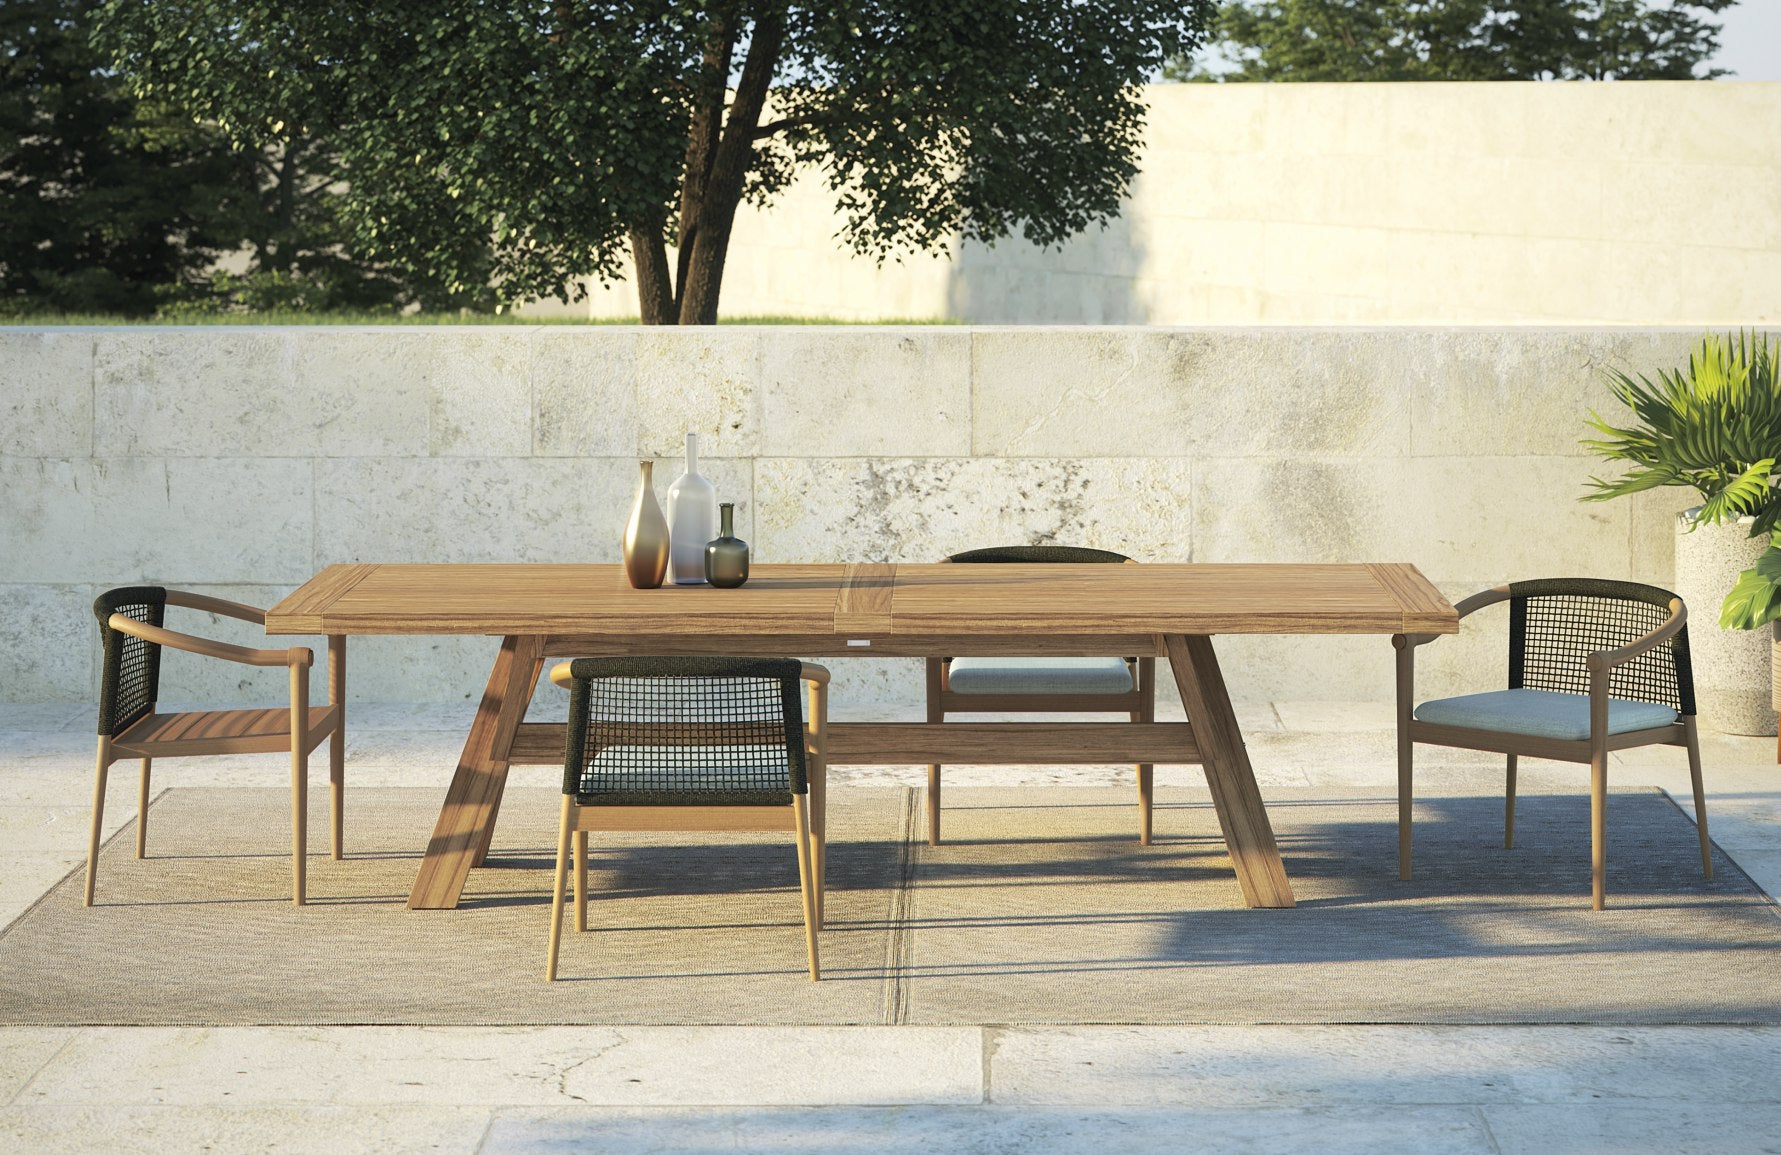 Luxury Garden Furniture | Atmosphera |  Shop Luxury Outdoor Furniture at LuxDeco.com